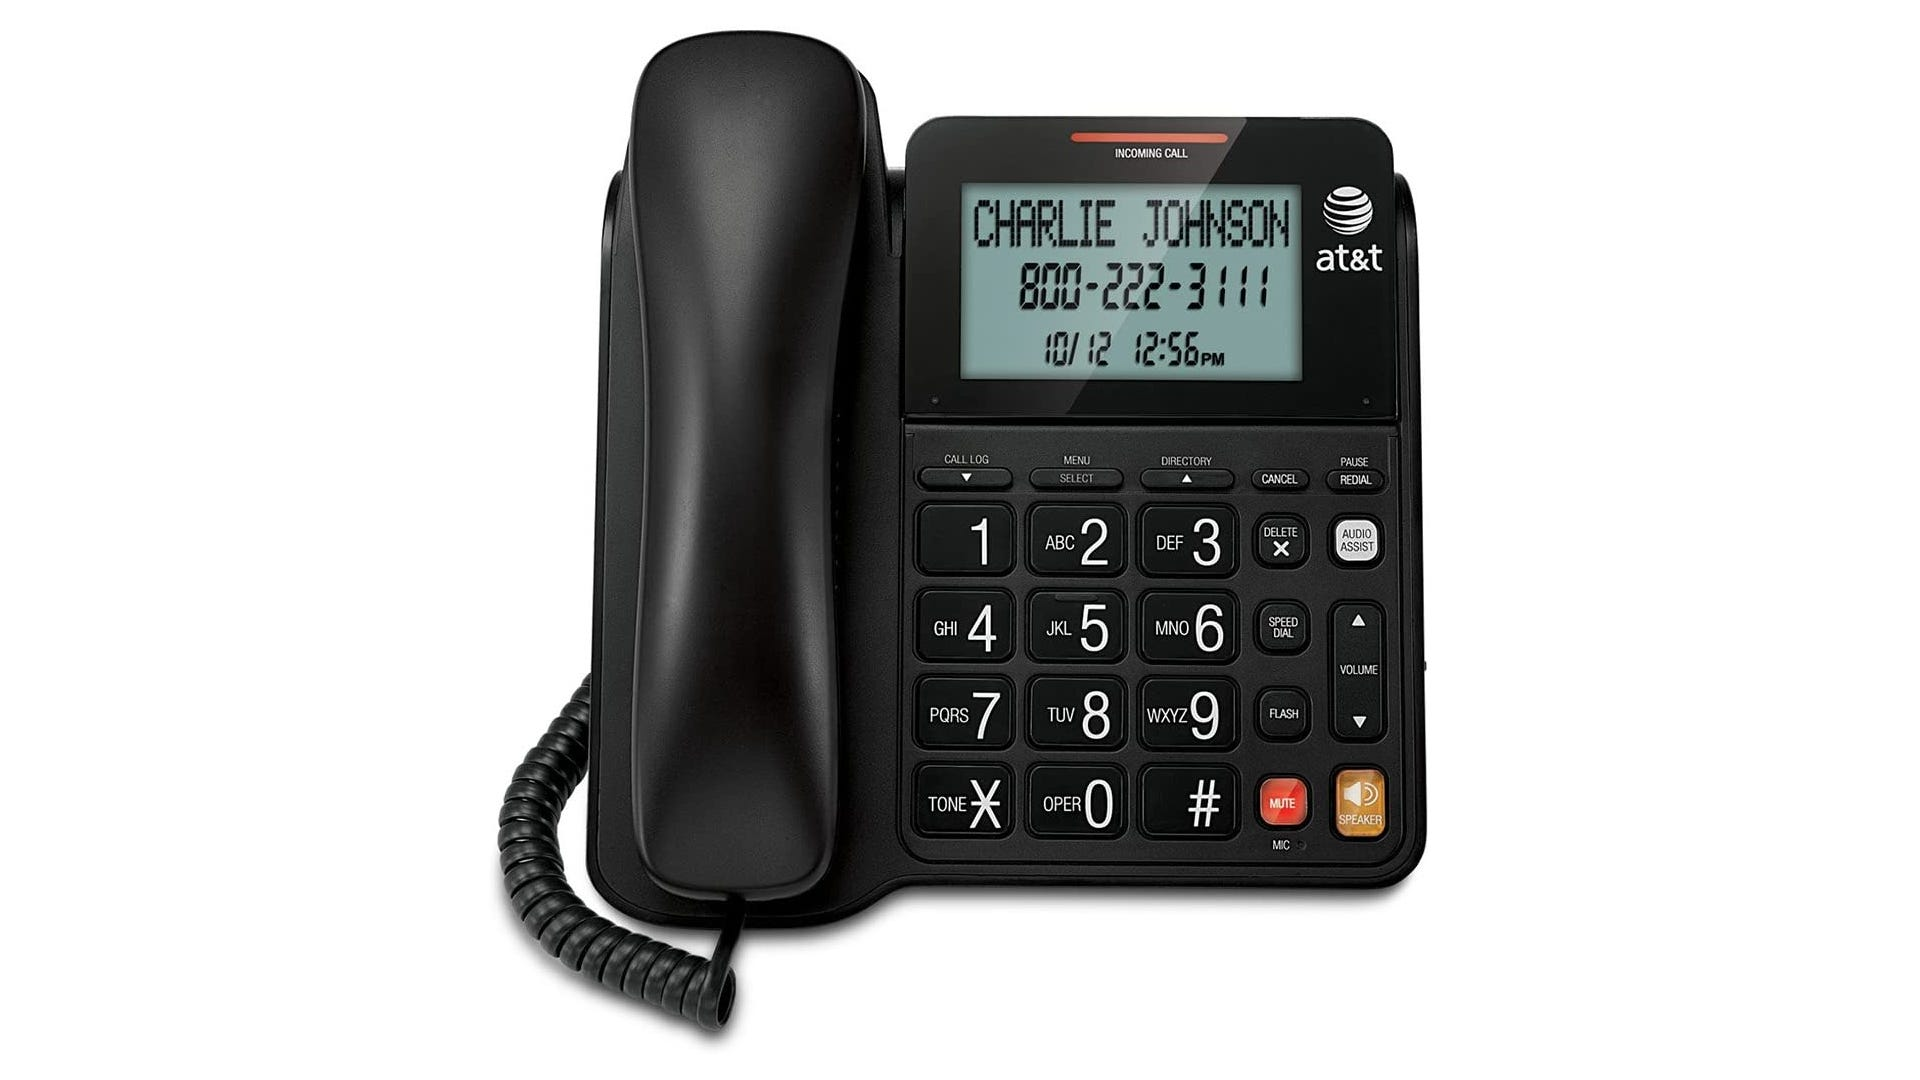 a black at&t corded phone with a digital screen and flat buttons